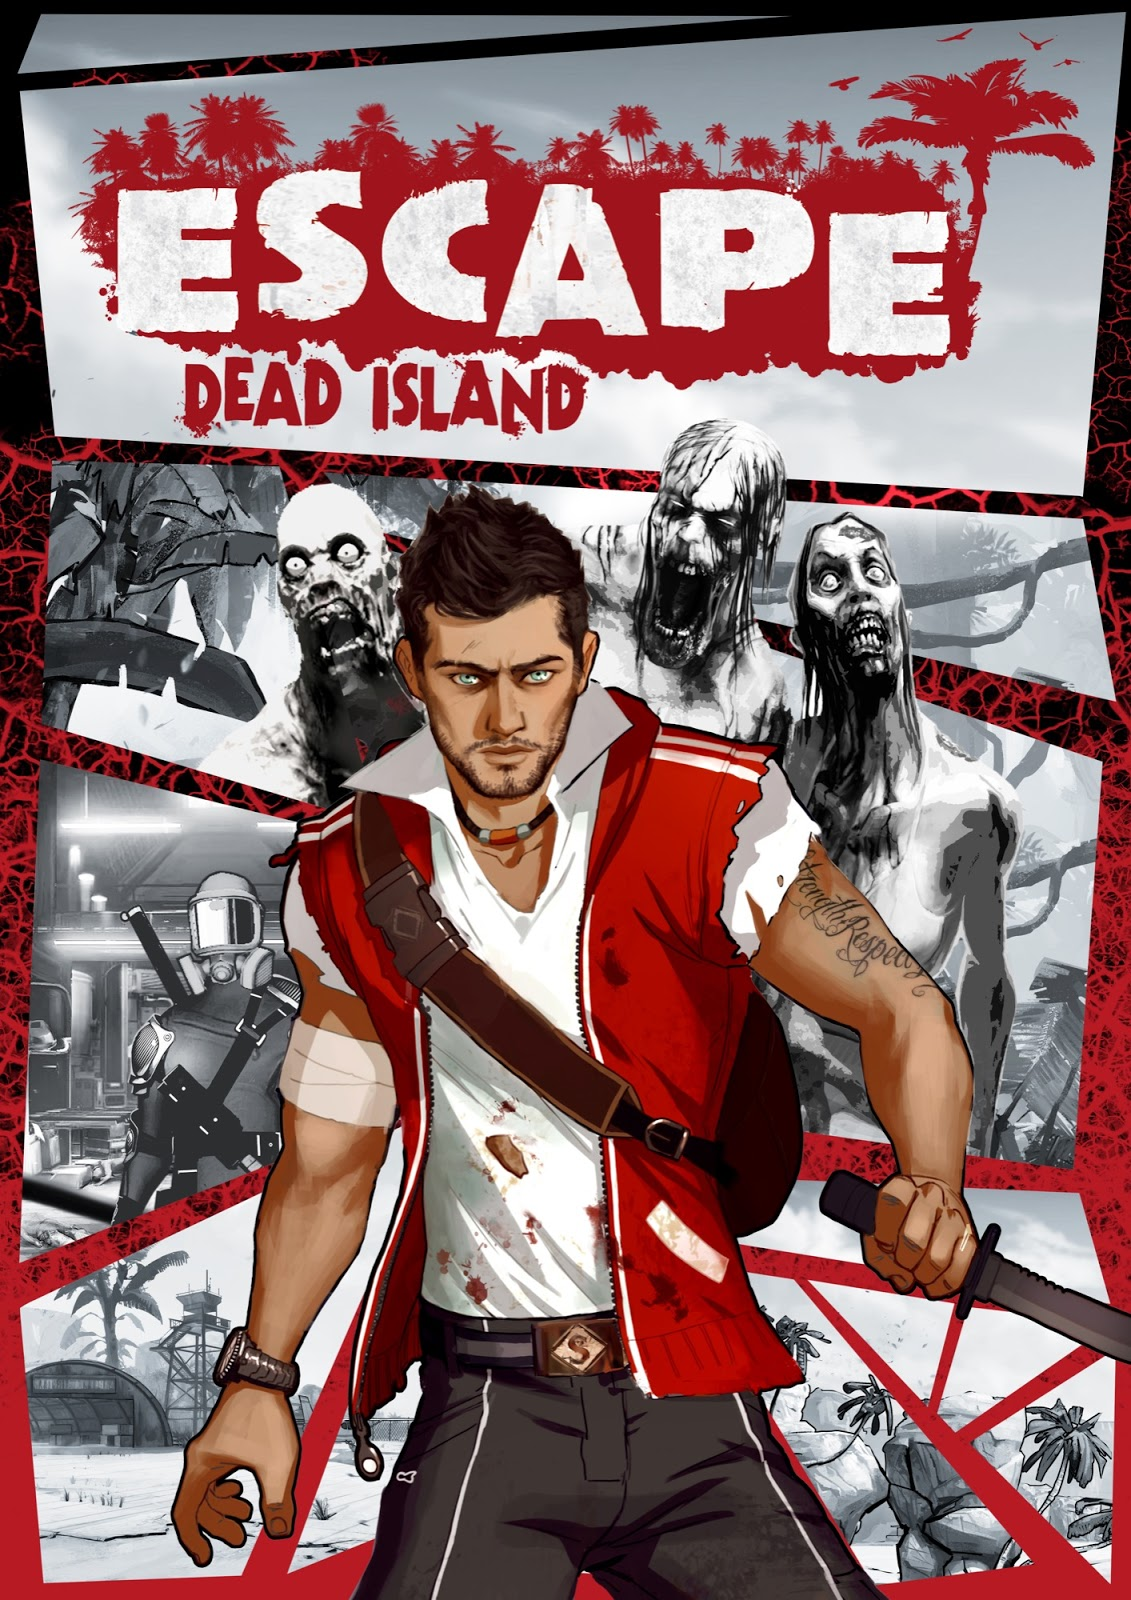 Escape Dead Island Videos - GameSpot